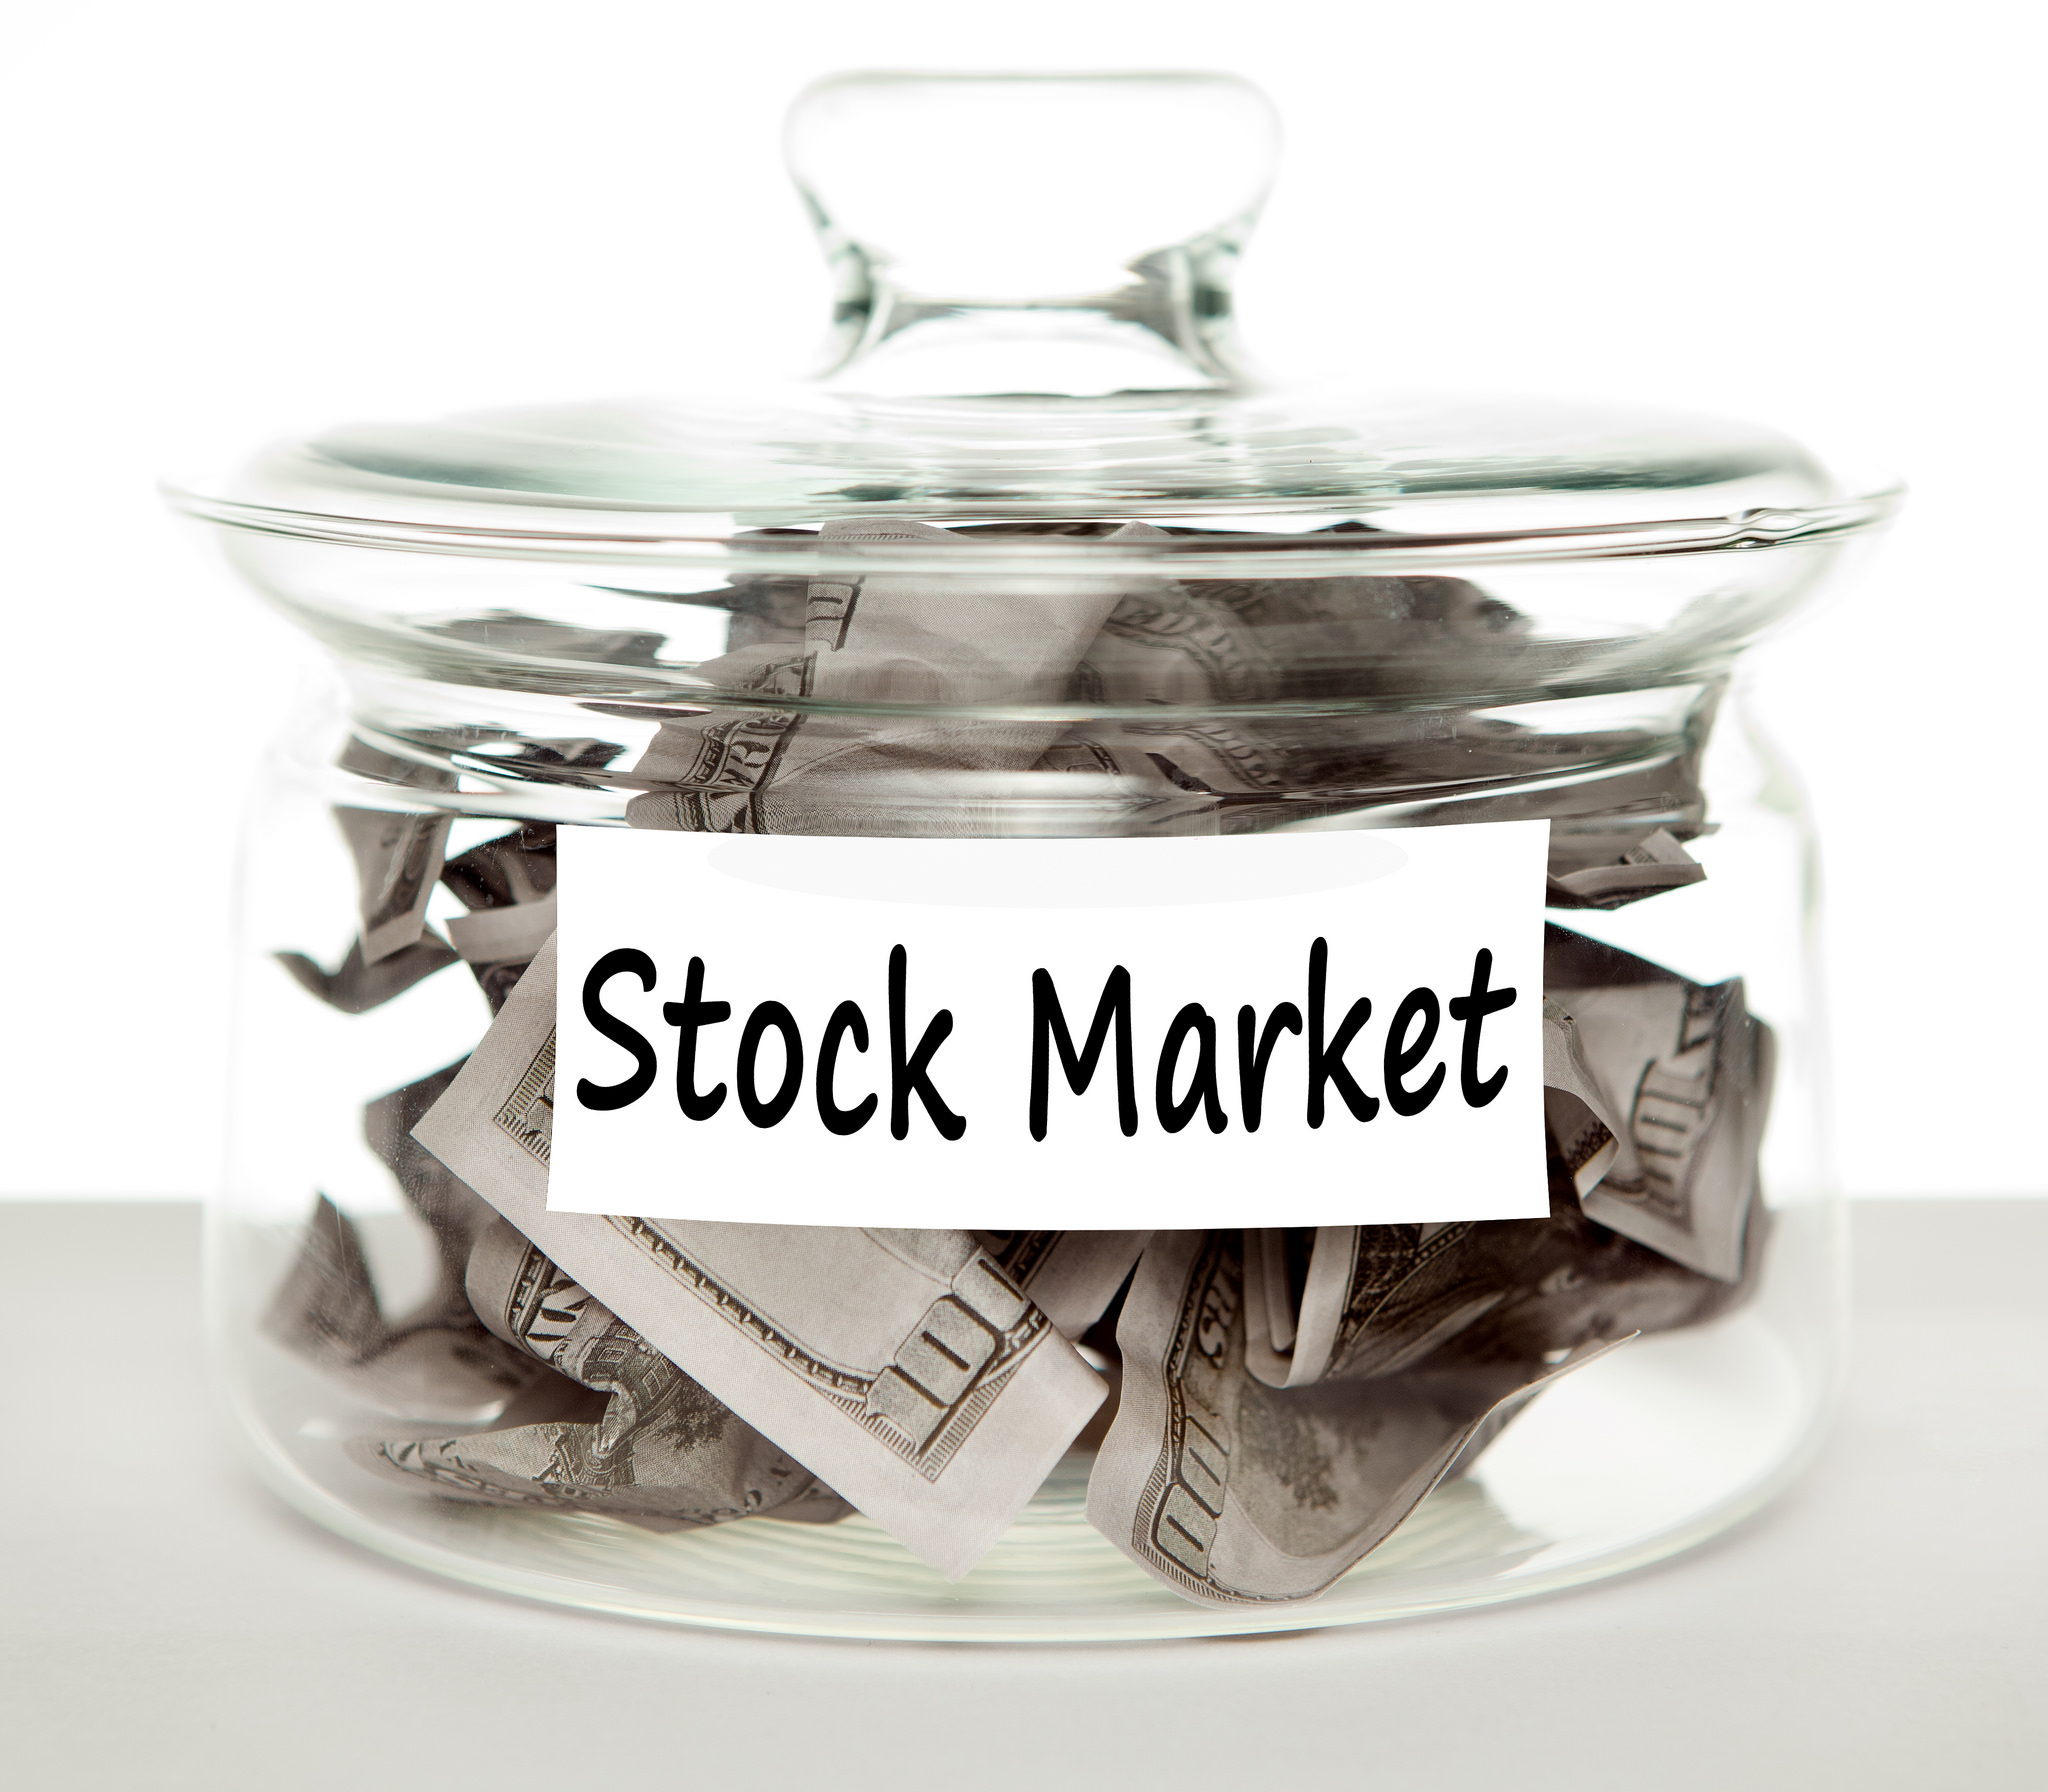 582px version of stock-market.jpg